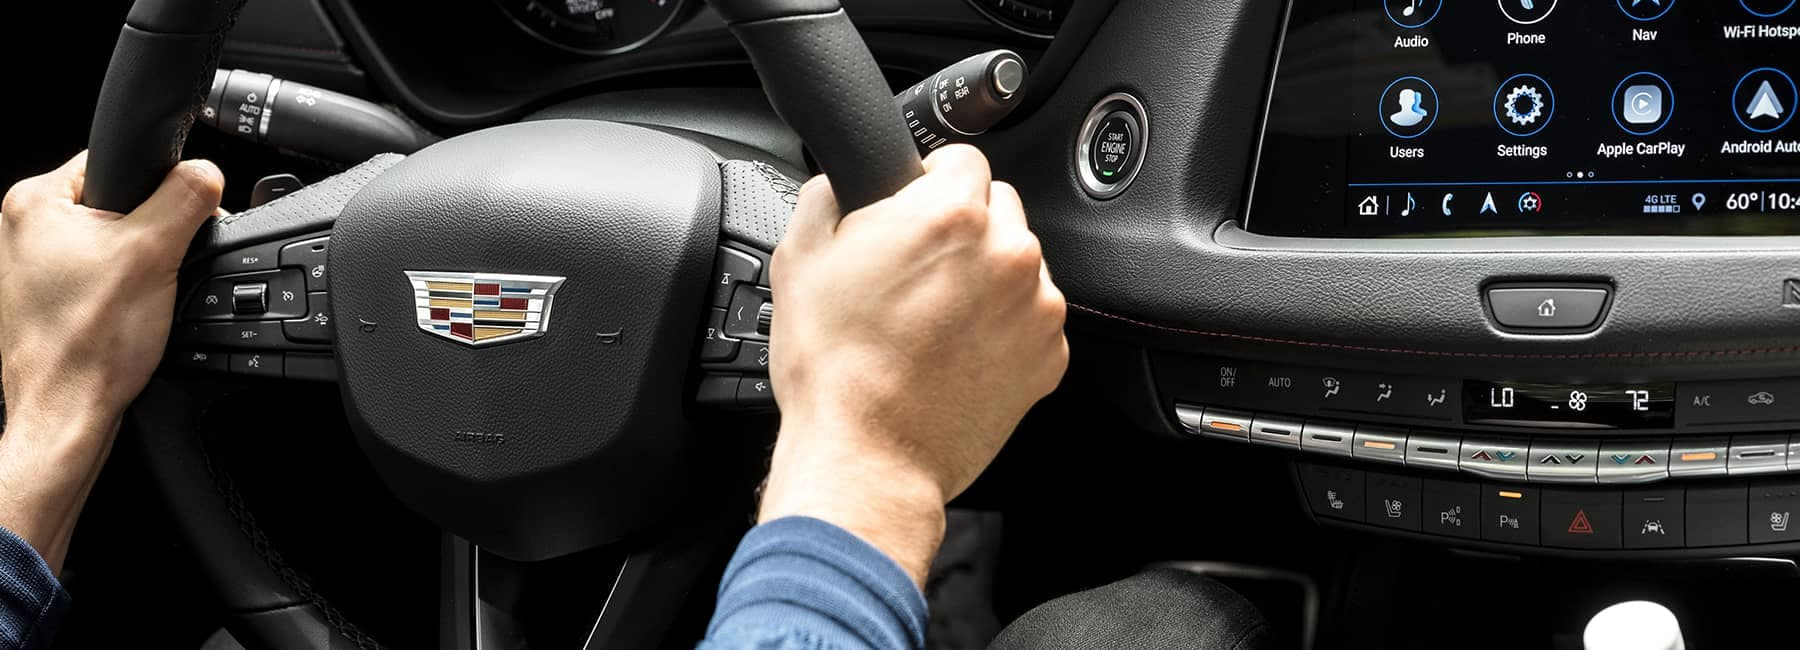 person with their hands on steering wheel